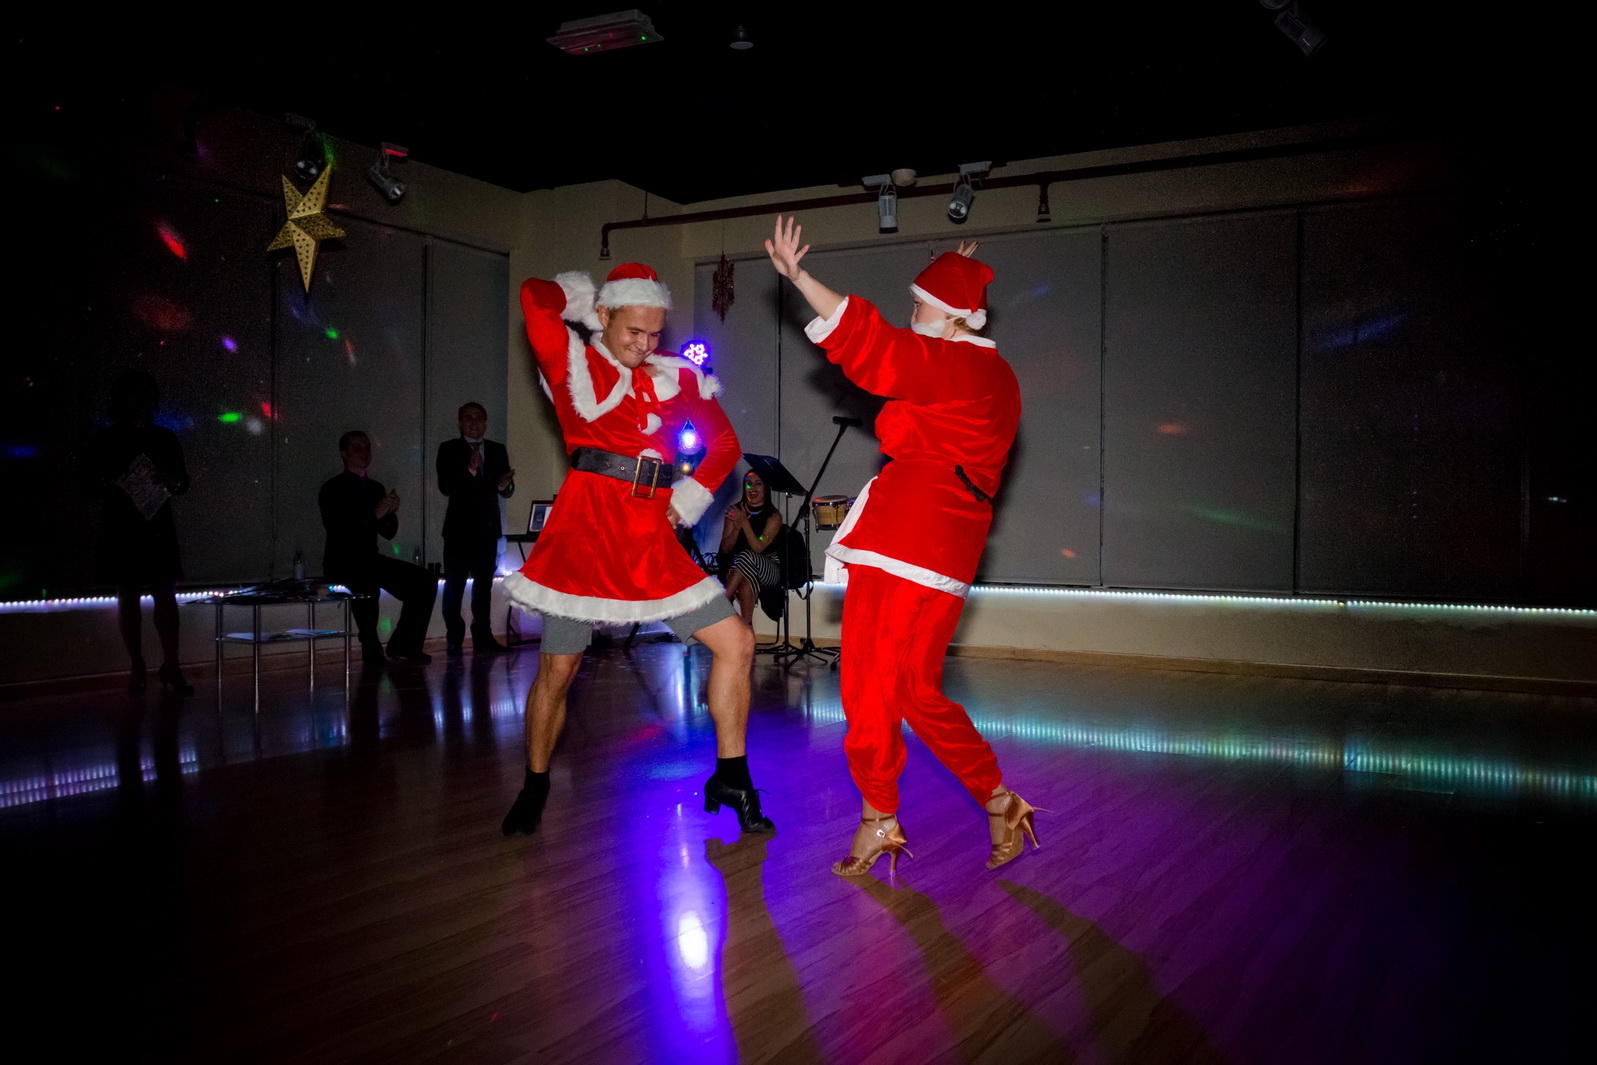 X-Mas dance couple Santa and Mrs. Claus